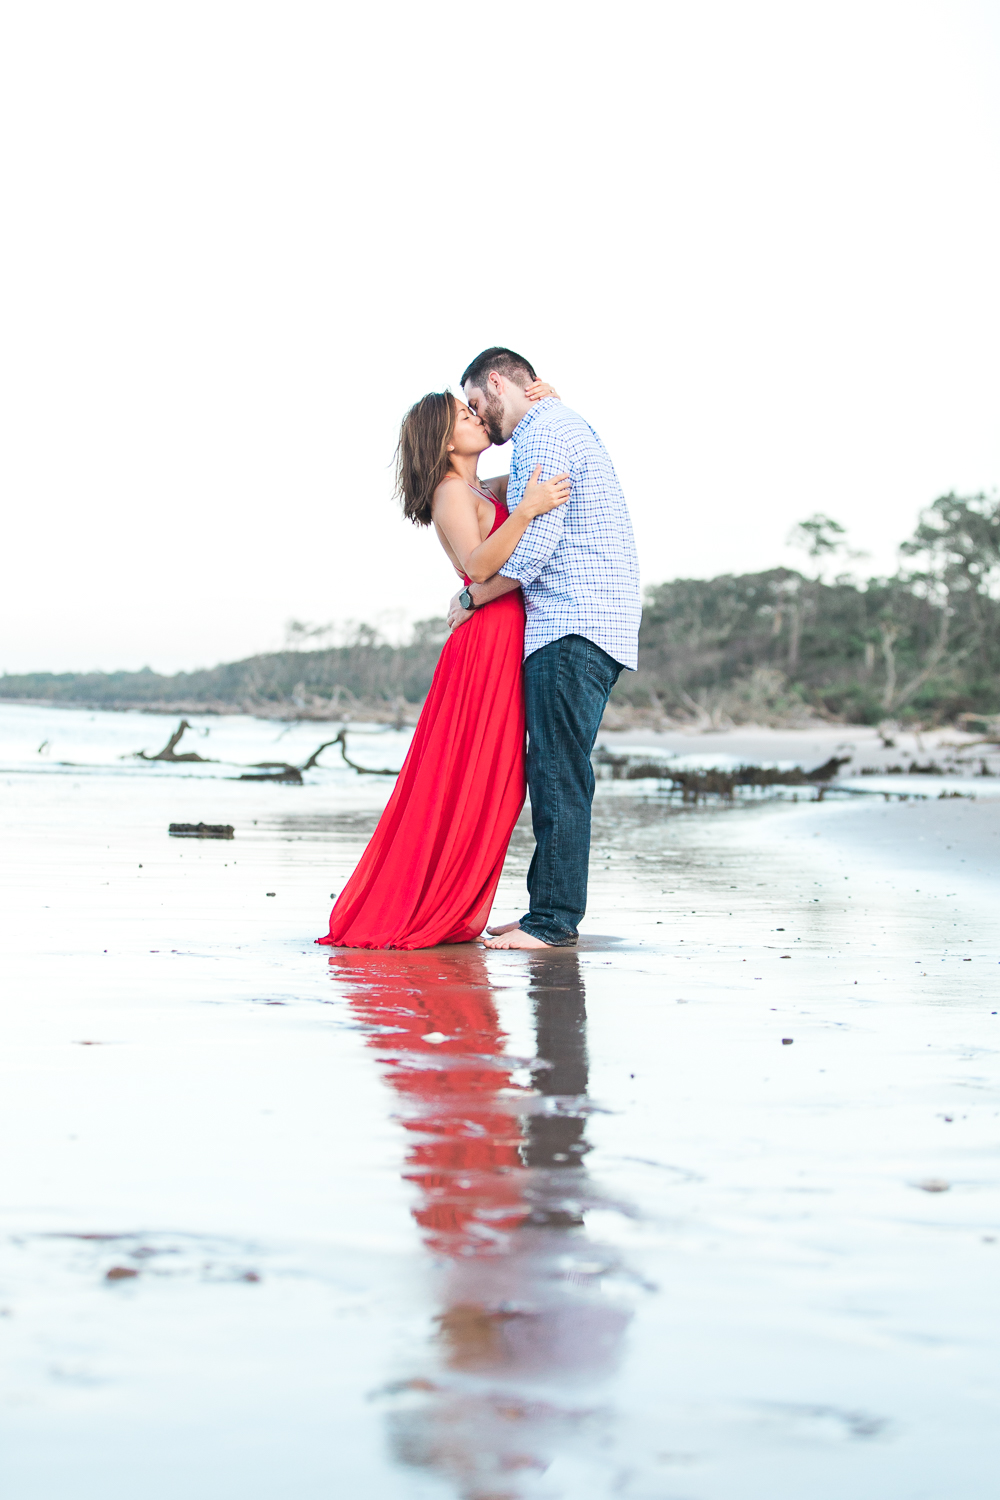 high fashion engagement pictures in big talbot island, jacksonville fl